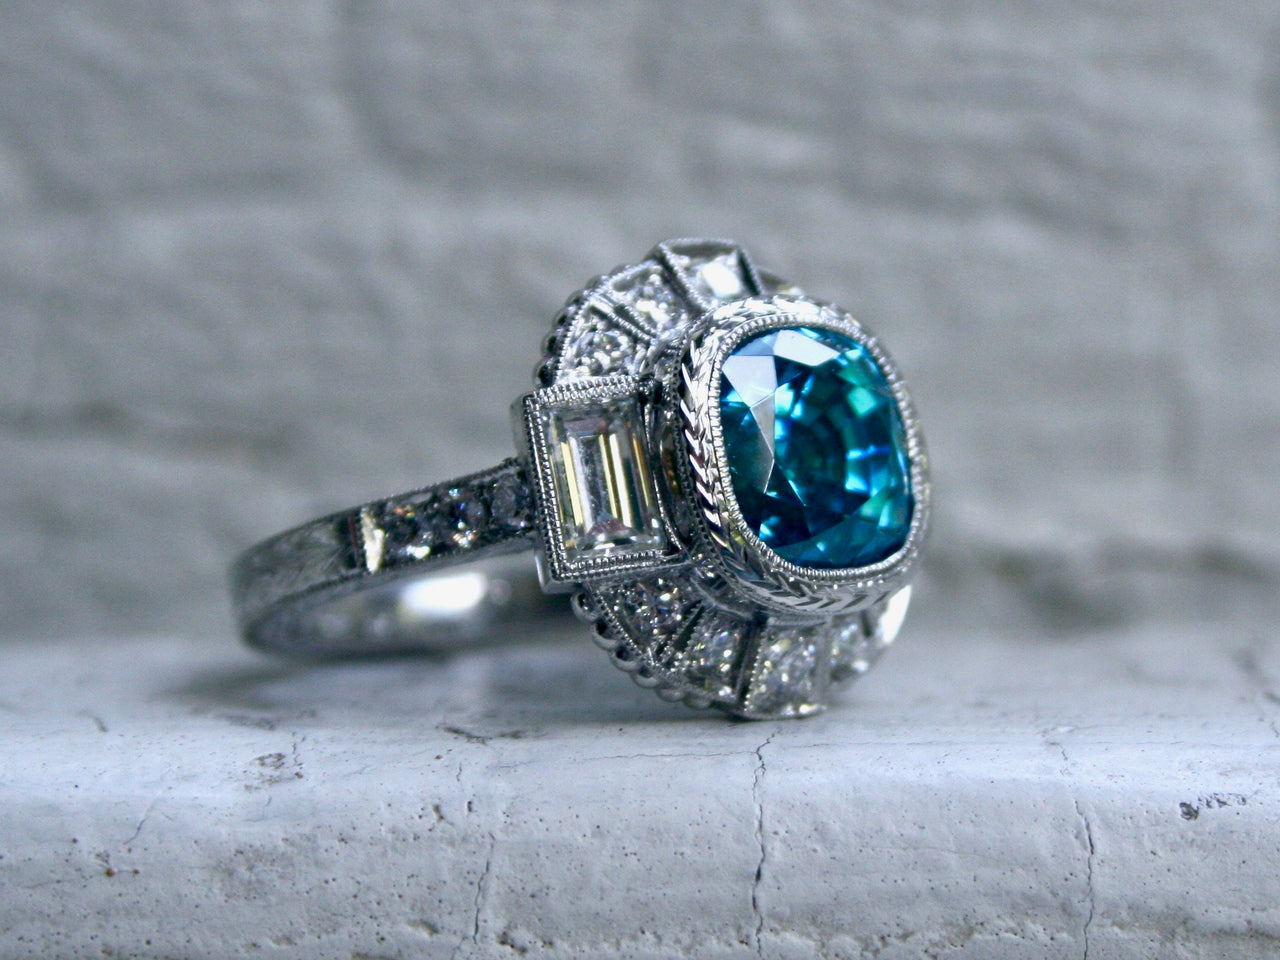 Stunning Platinum Diamond and Blue Zircon Ring Engagement Ring - 6.50ct.